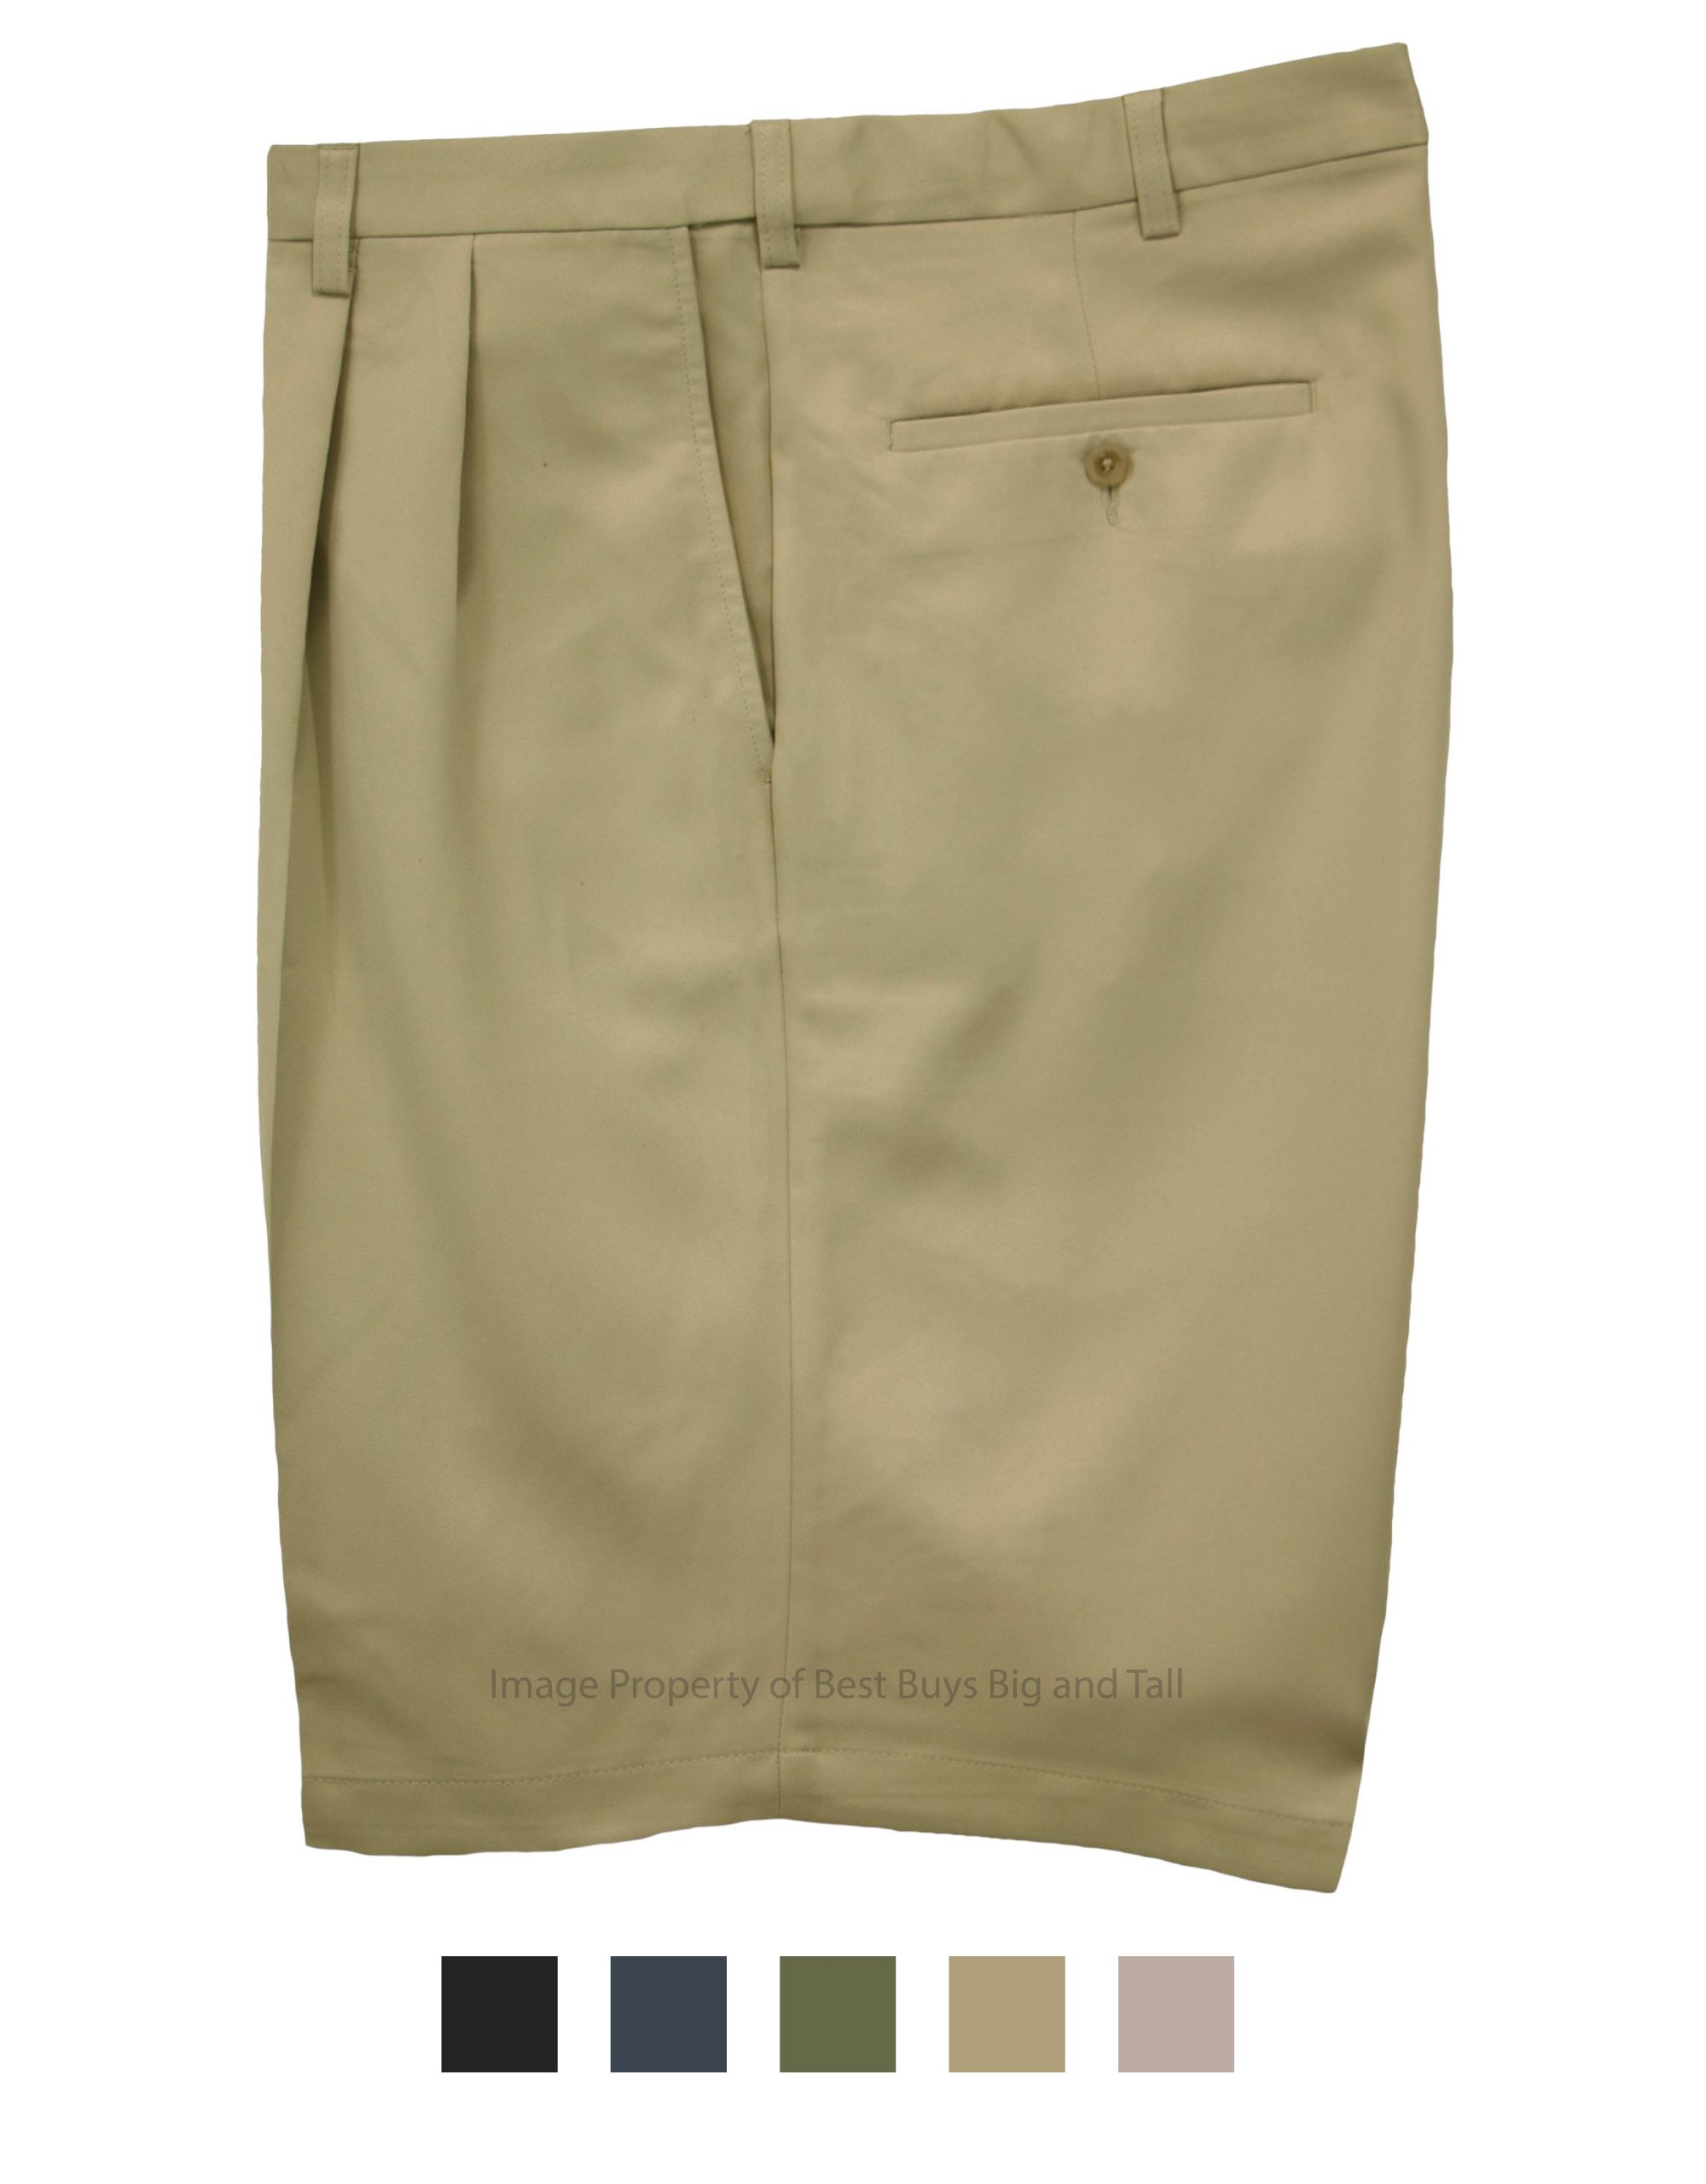 Haggar Big & Tall Men's Pleated Casual Shorts Expandable Waist Khaki Size 50#898B